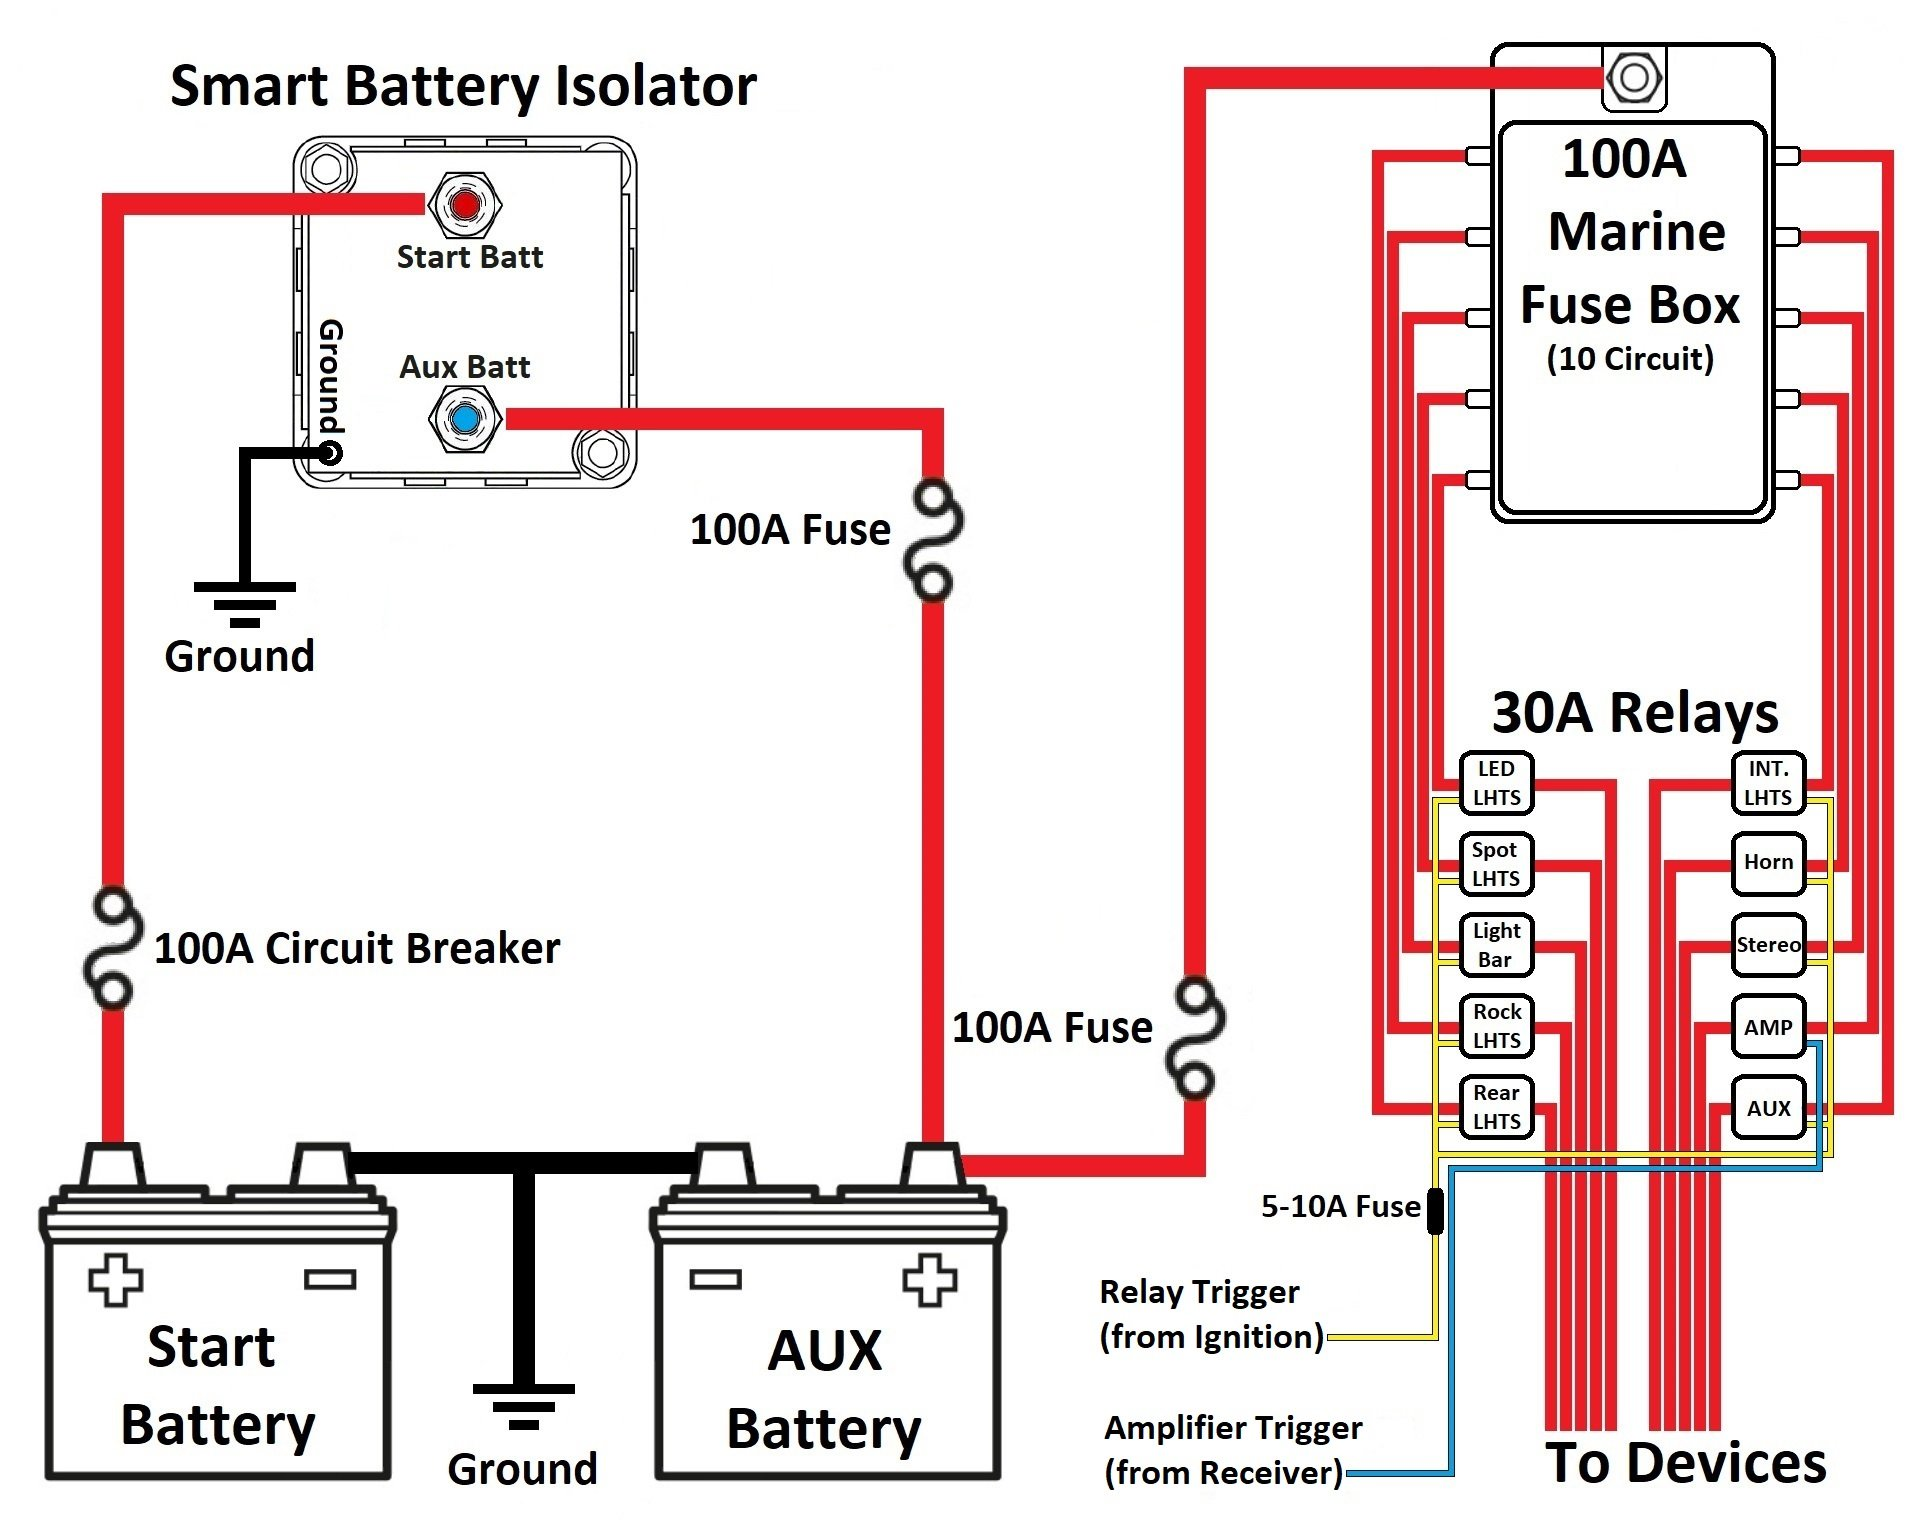 smart battery isolator dual battery wiring diagram rh aceforums net battery wire diagram 2011 flstc battery wiring diagram for 48 volt ezgo